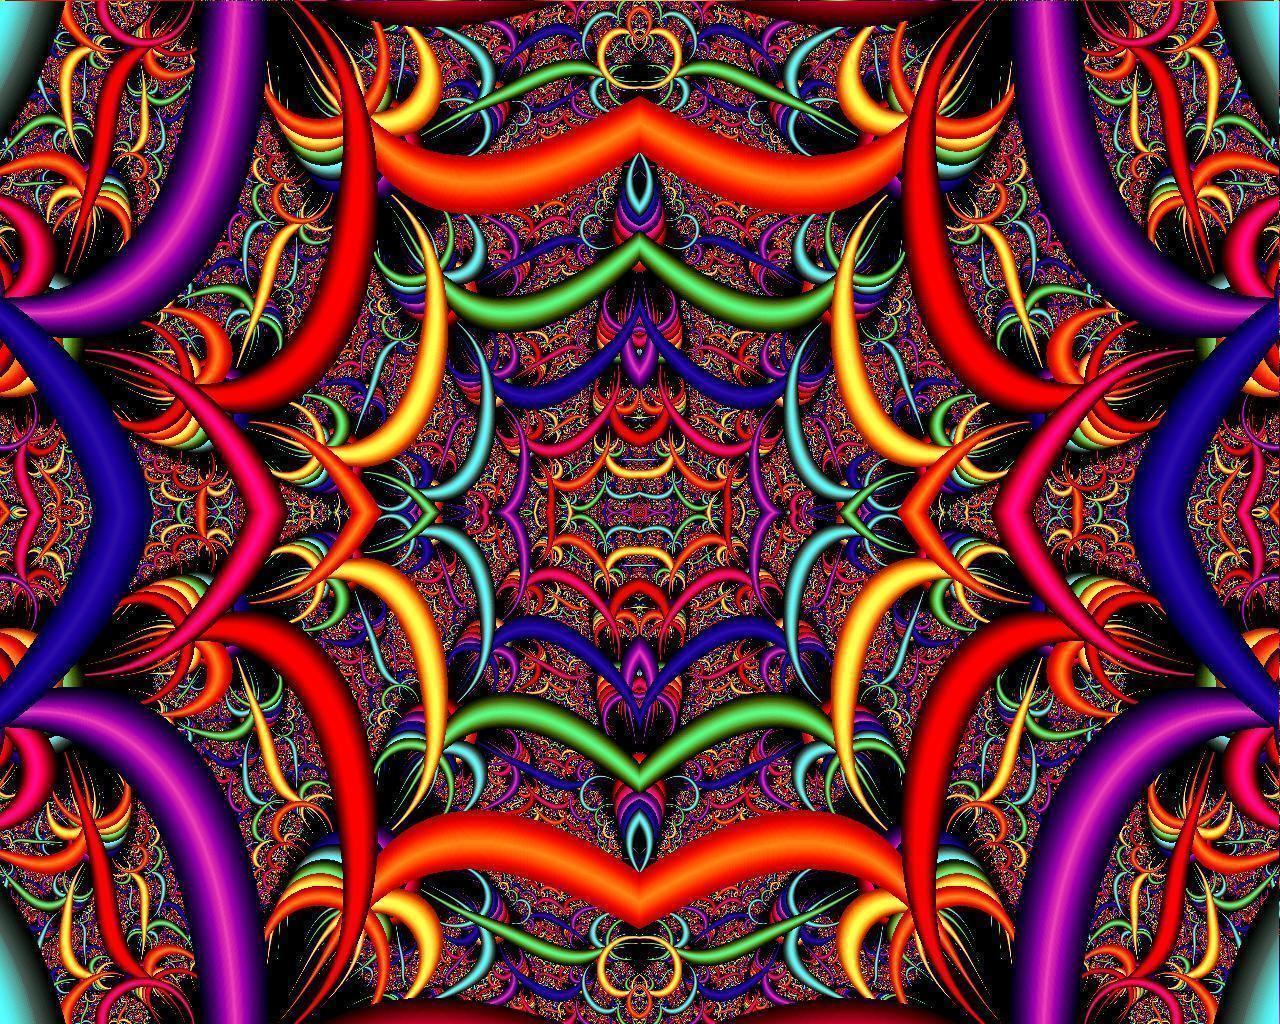 Free Psychedelic Wallpapers - Wallpaper Cave